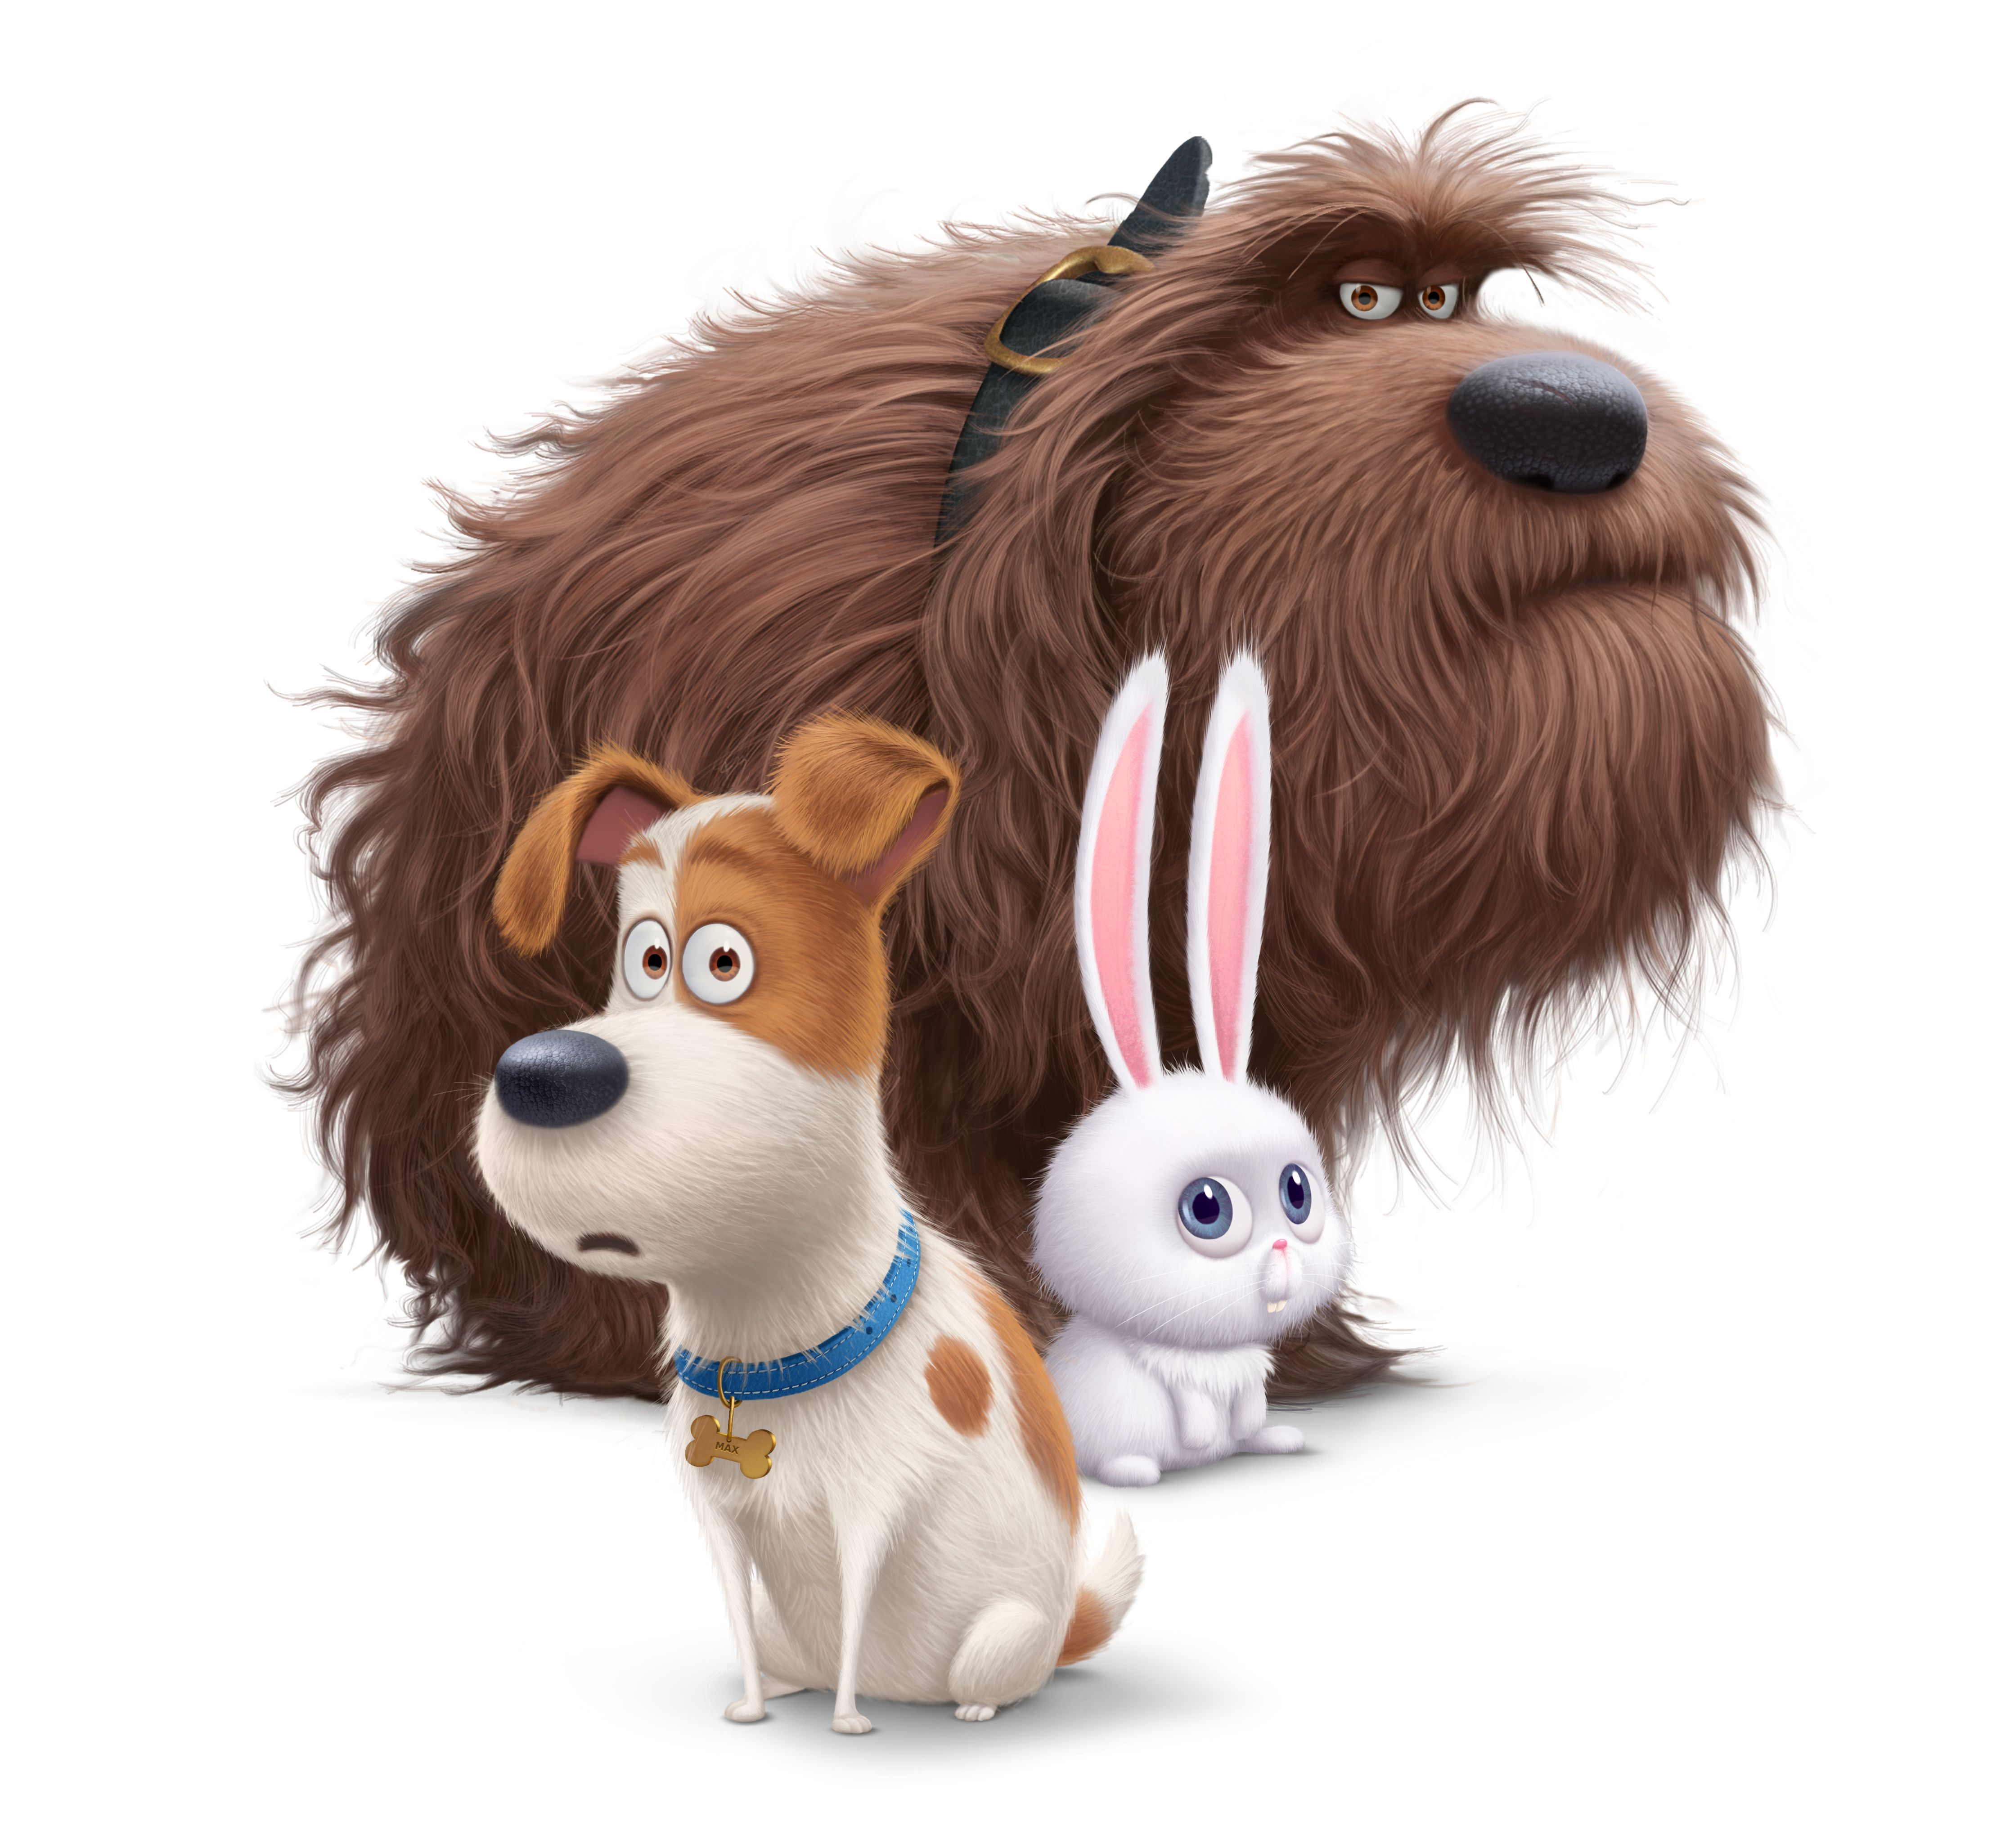 Chris Meledandri S Illumination Sets Louis C K Eric Stonestreet And Kevin Hart For 3d Animated Pets Pic At Universal Secret Life Of Pets Pets Movie Animated Movies